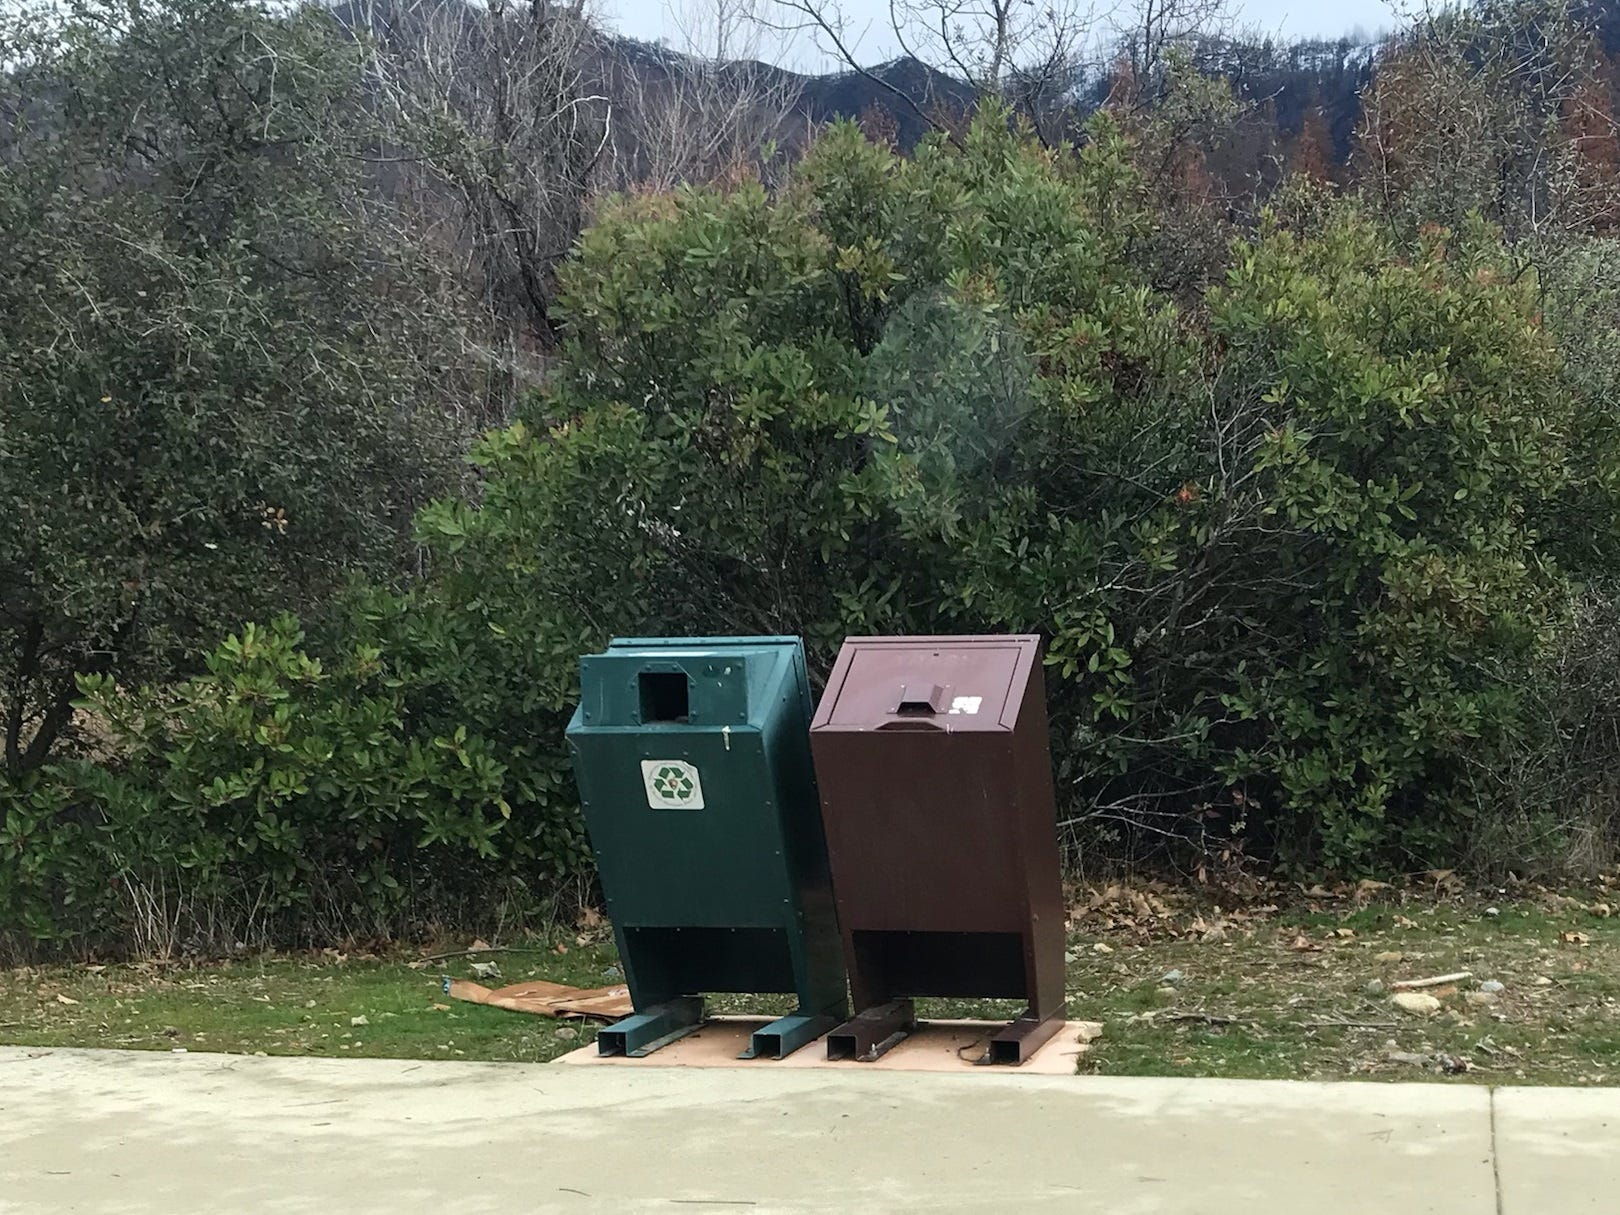 The trash bins at Whiskey Creek on Monday, Jan. 7, 2019.